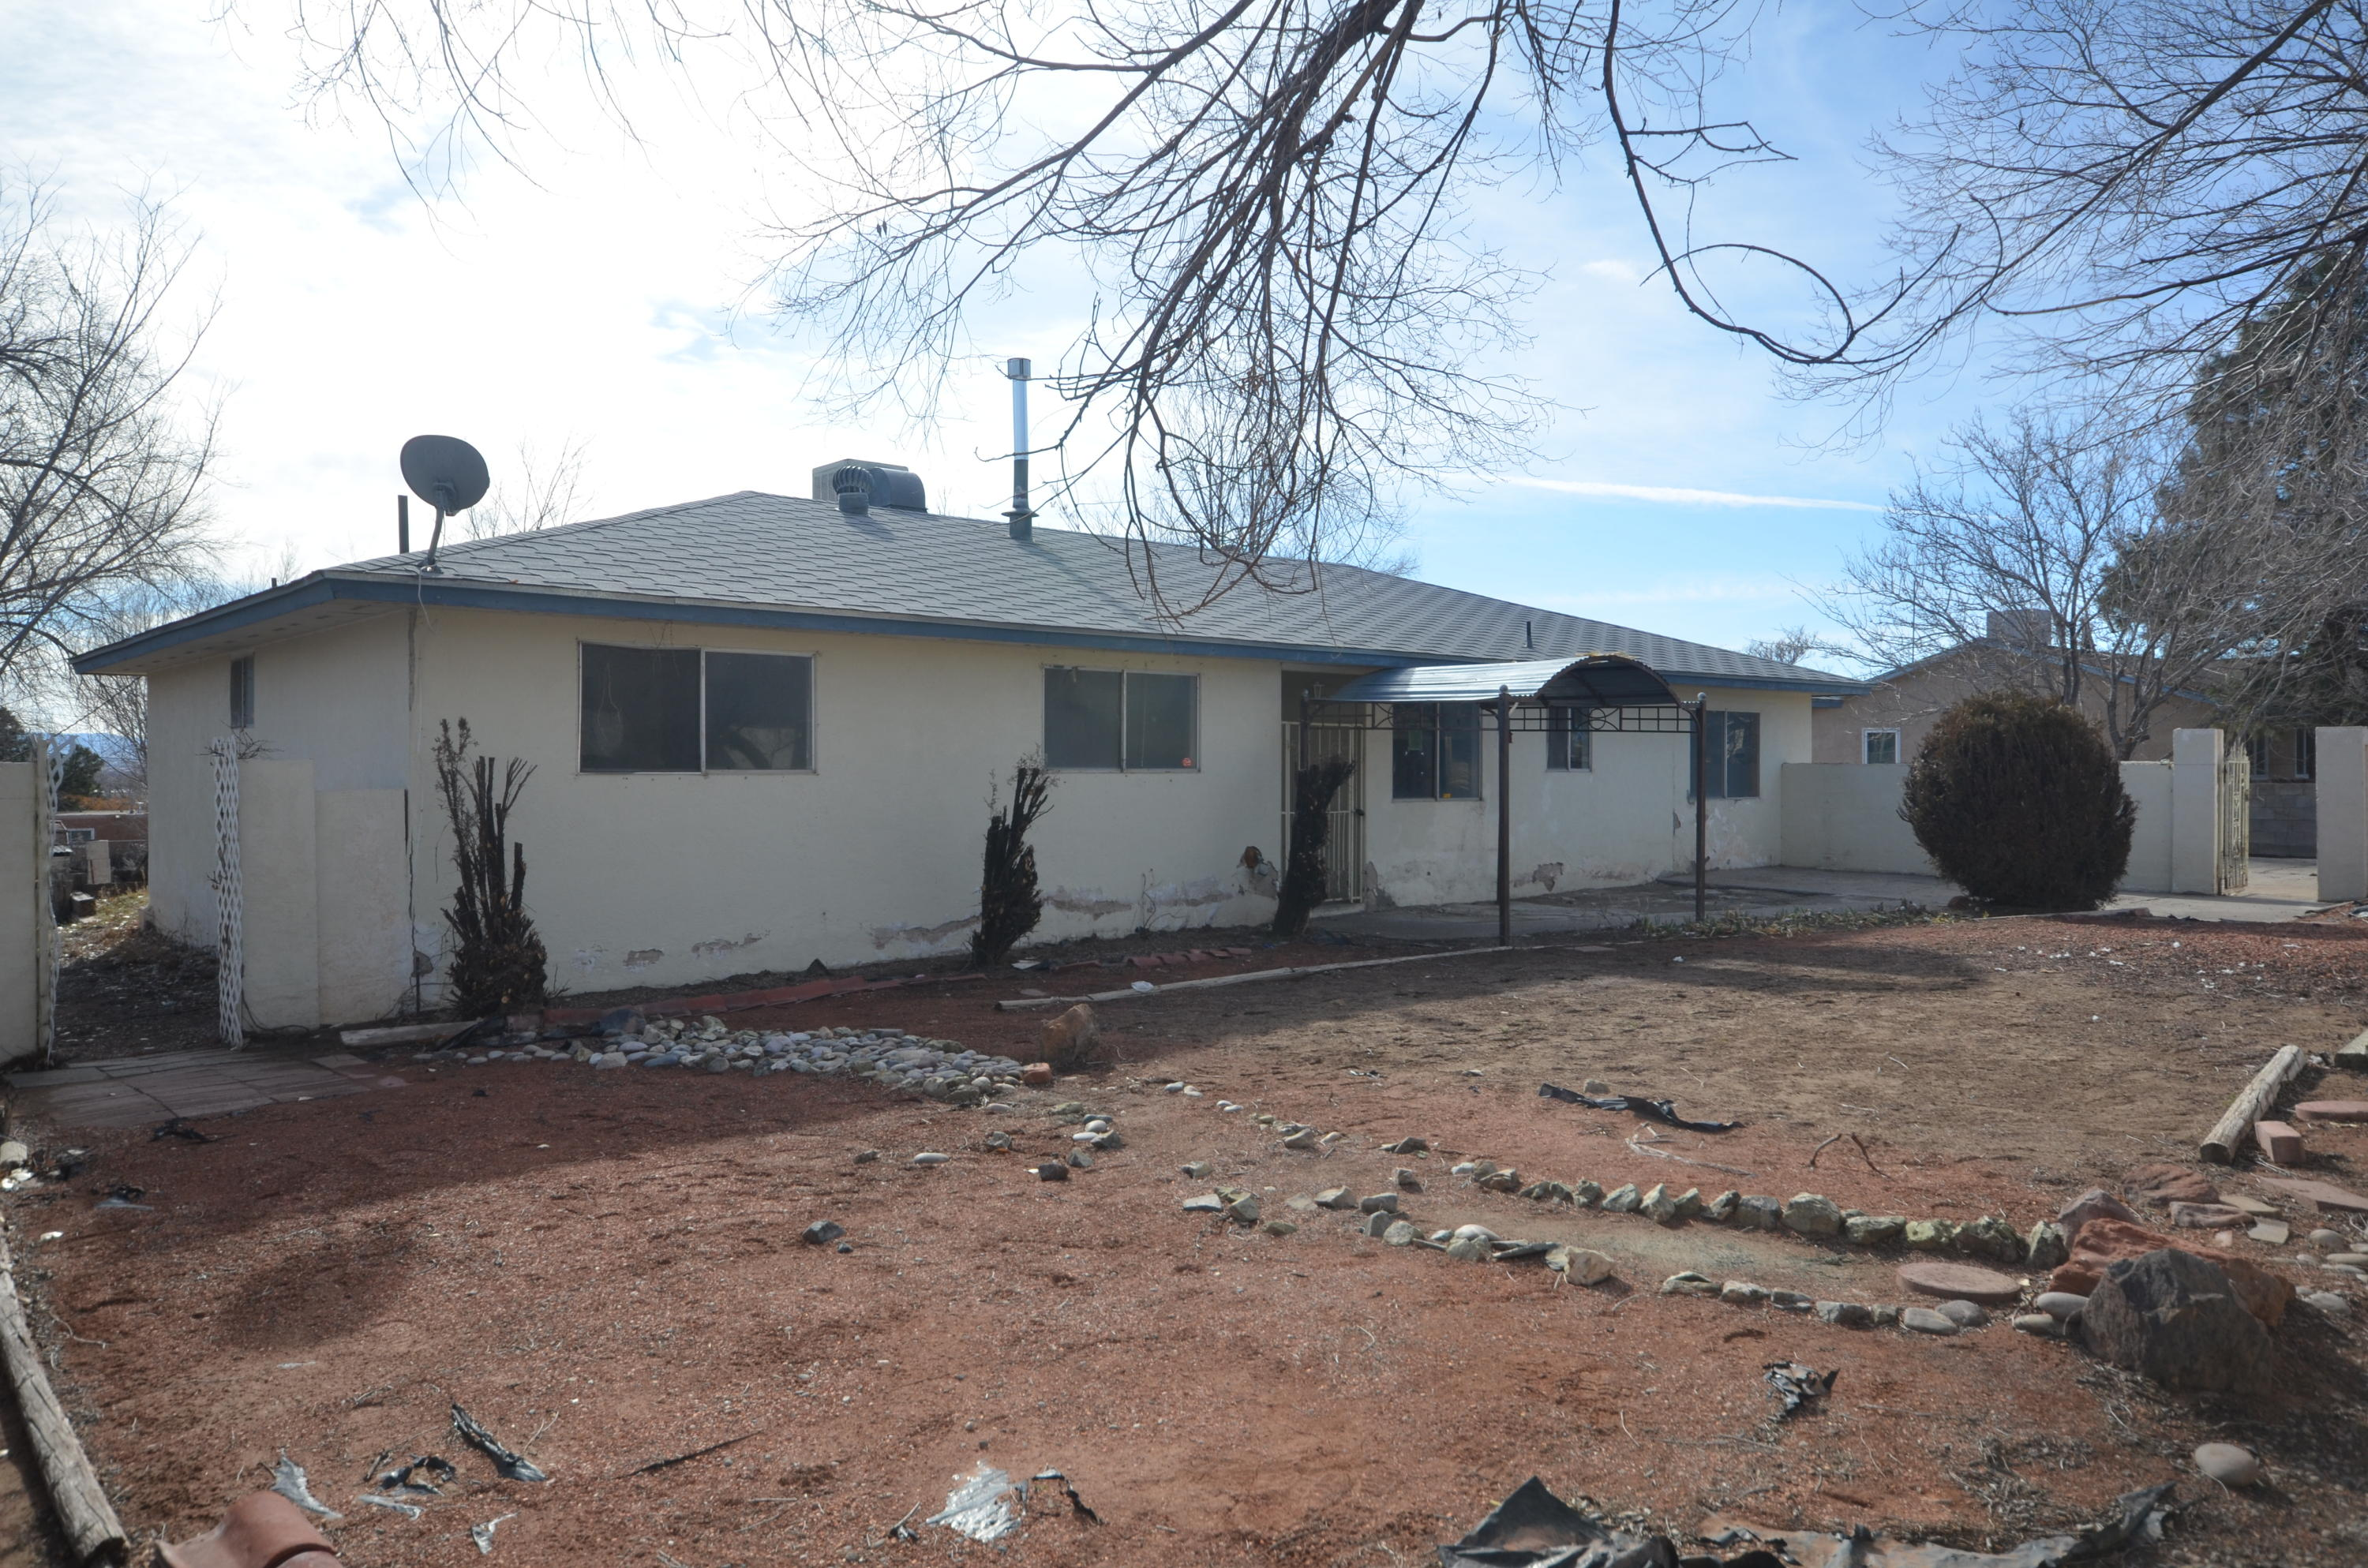 Bring your design ideas to this Corrales home and make it your own! 4 bedroom plus office excellent for growing family. Large living with cozy fireplace. Open kitchen / dining with breakfast bar. Don't miss out. Home is ready for facelift and new owners.